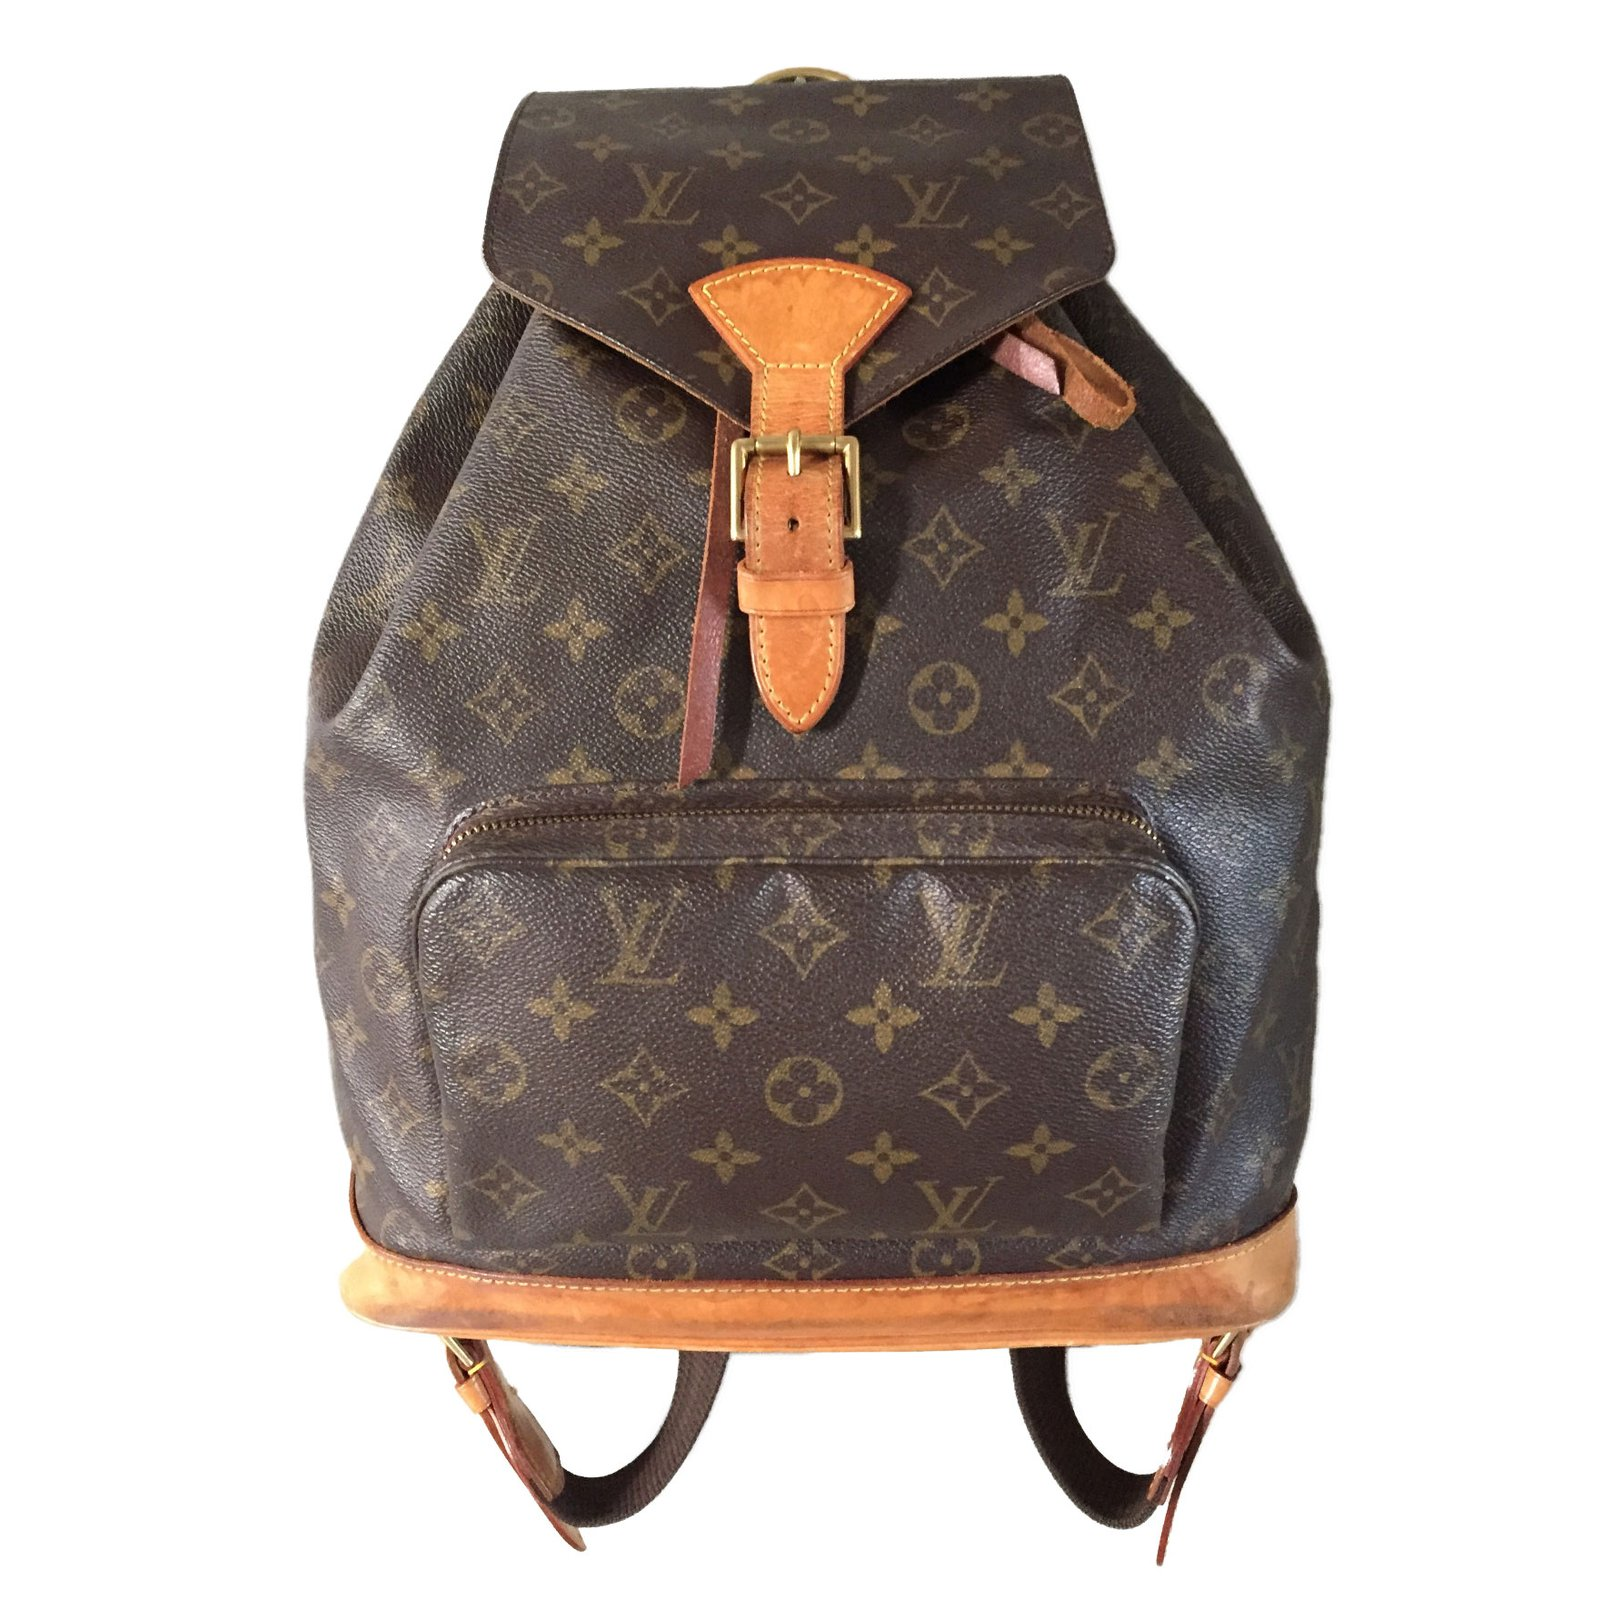 louis vuitton sac a dos femme prix confederated tribes of the umatilla indian reservation